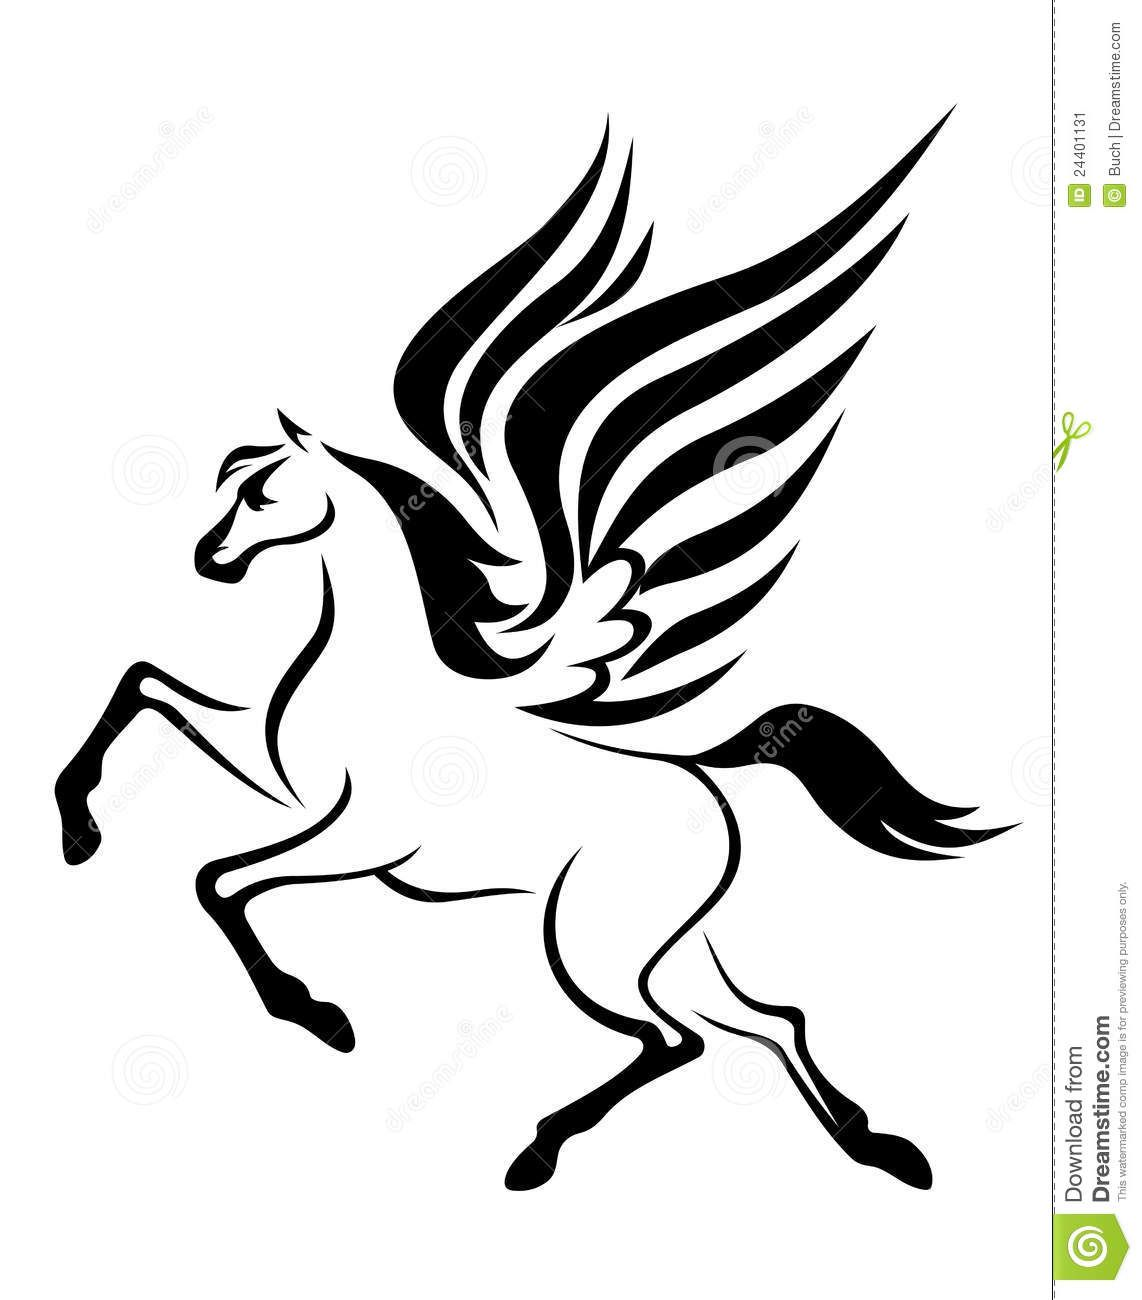 Swirly horse black and white clipart library Pegasus Horse With Wings Stock Image - Image: 24401131 ... library